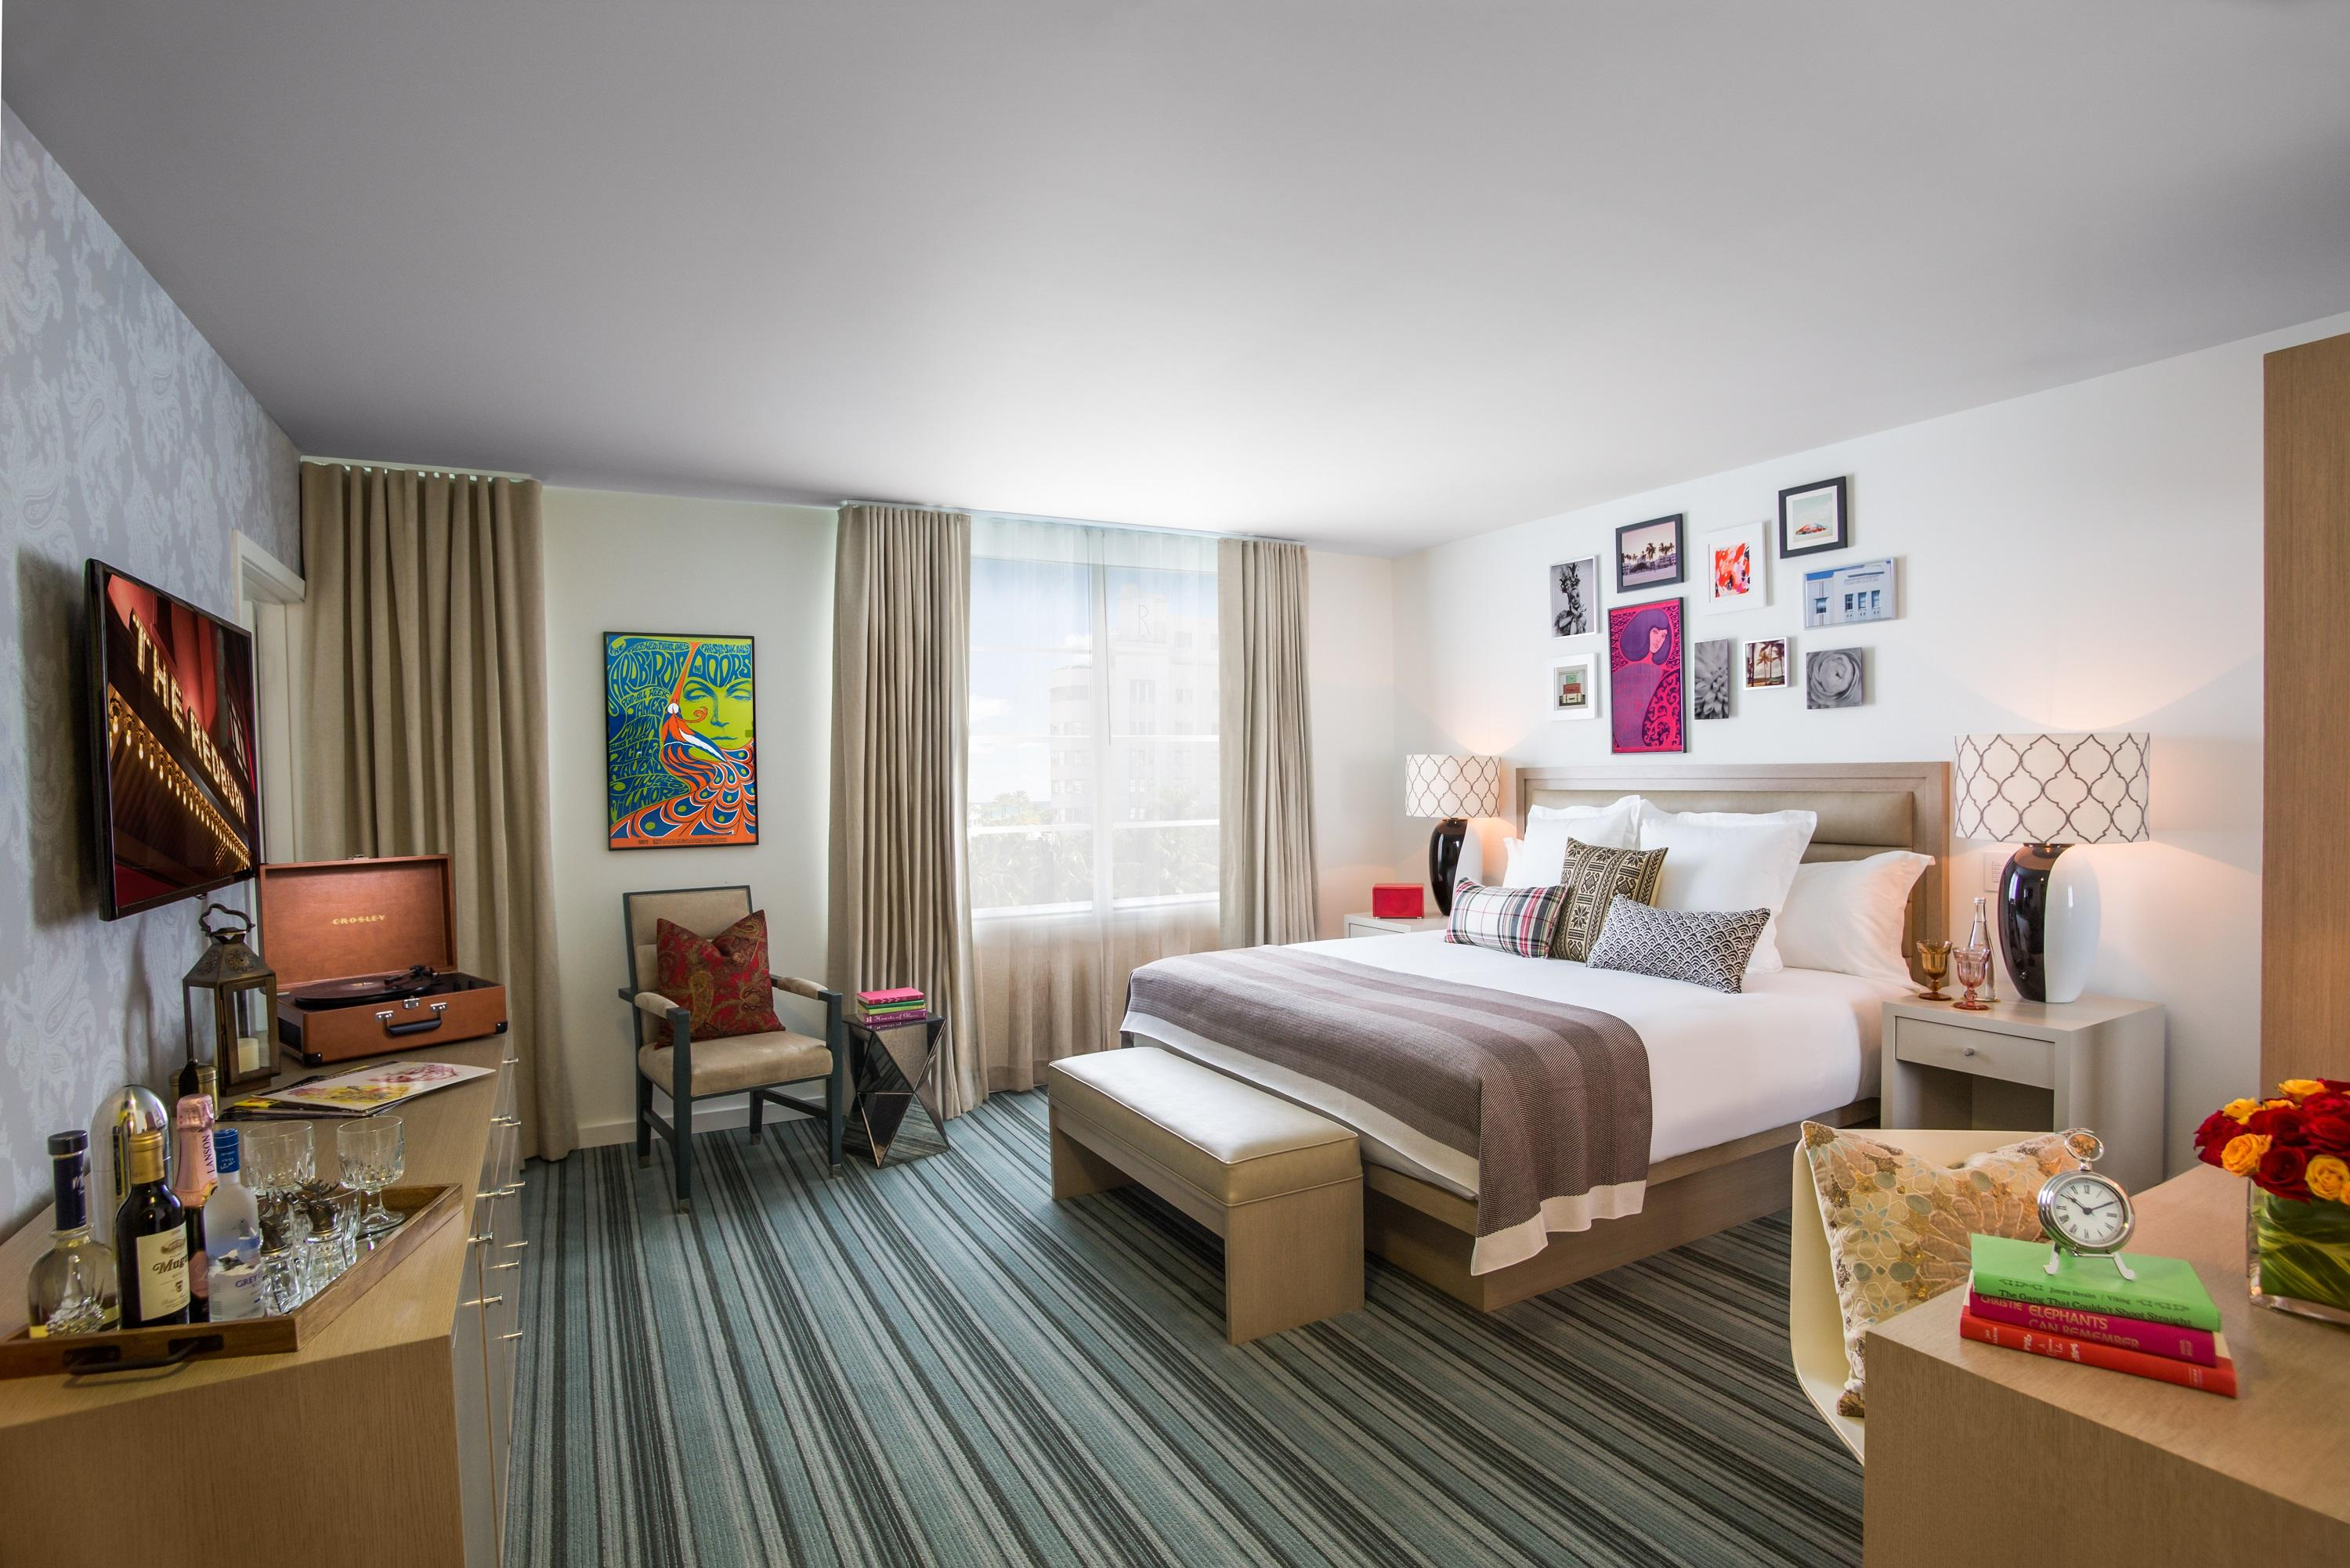 hotel room with king bed and framed art